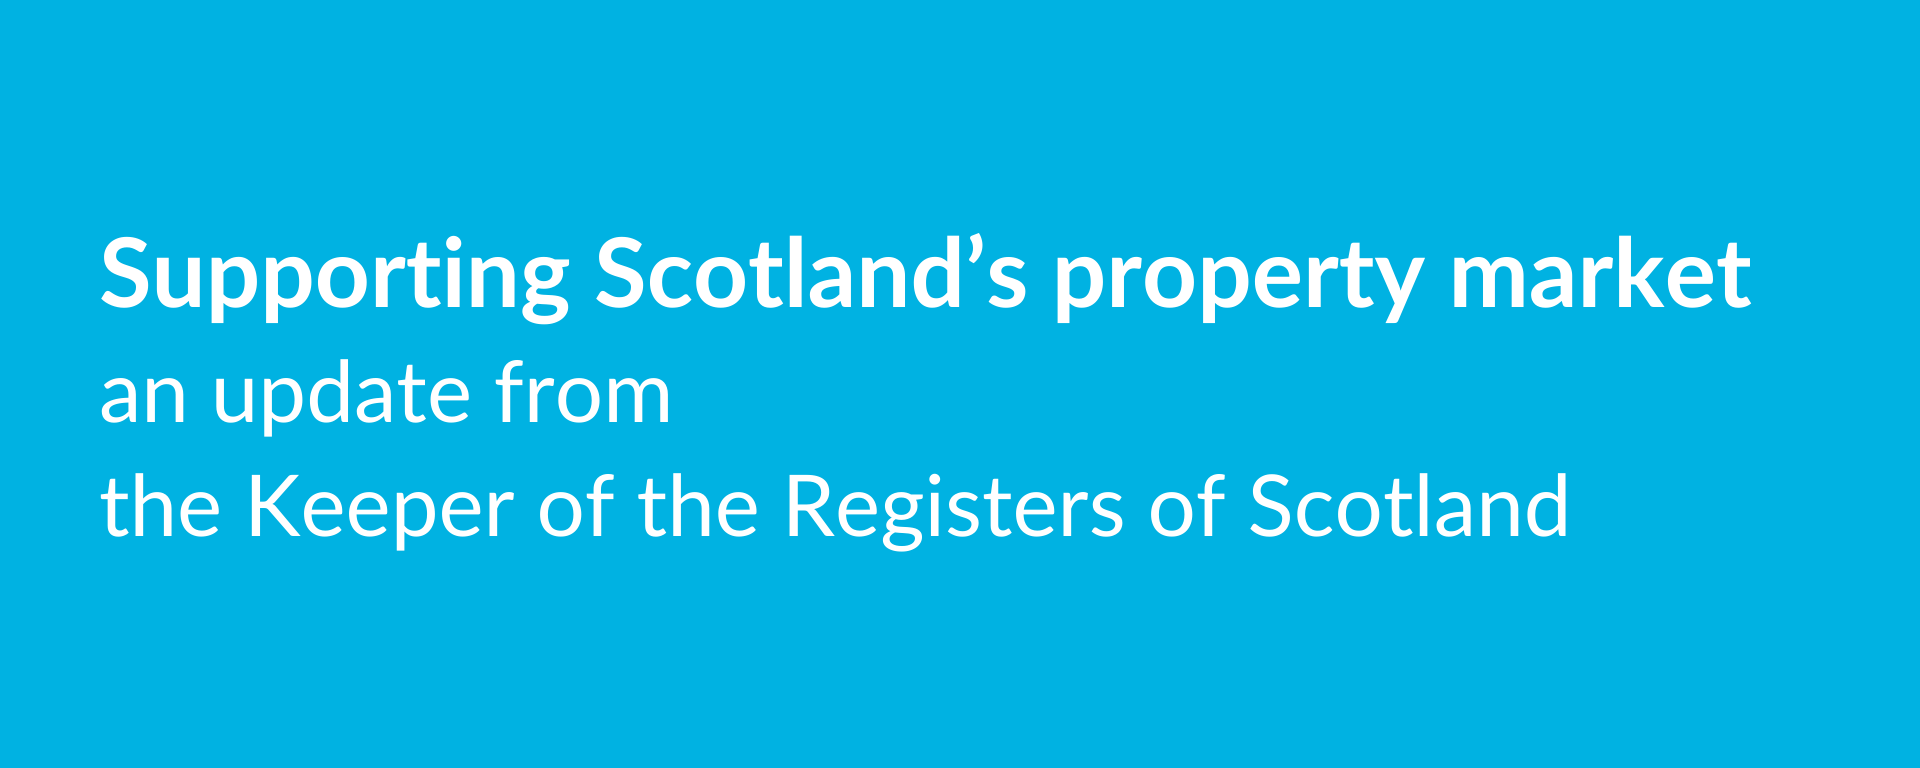 Supporting Scotland's property market